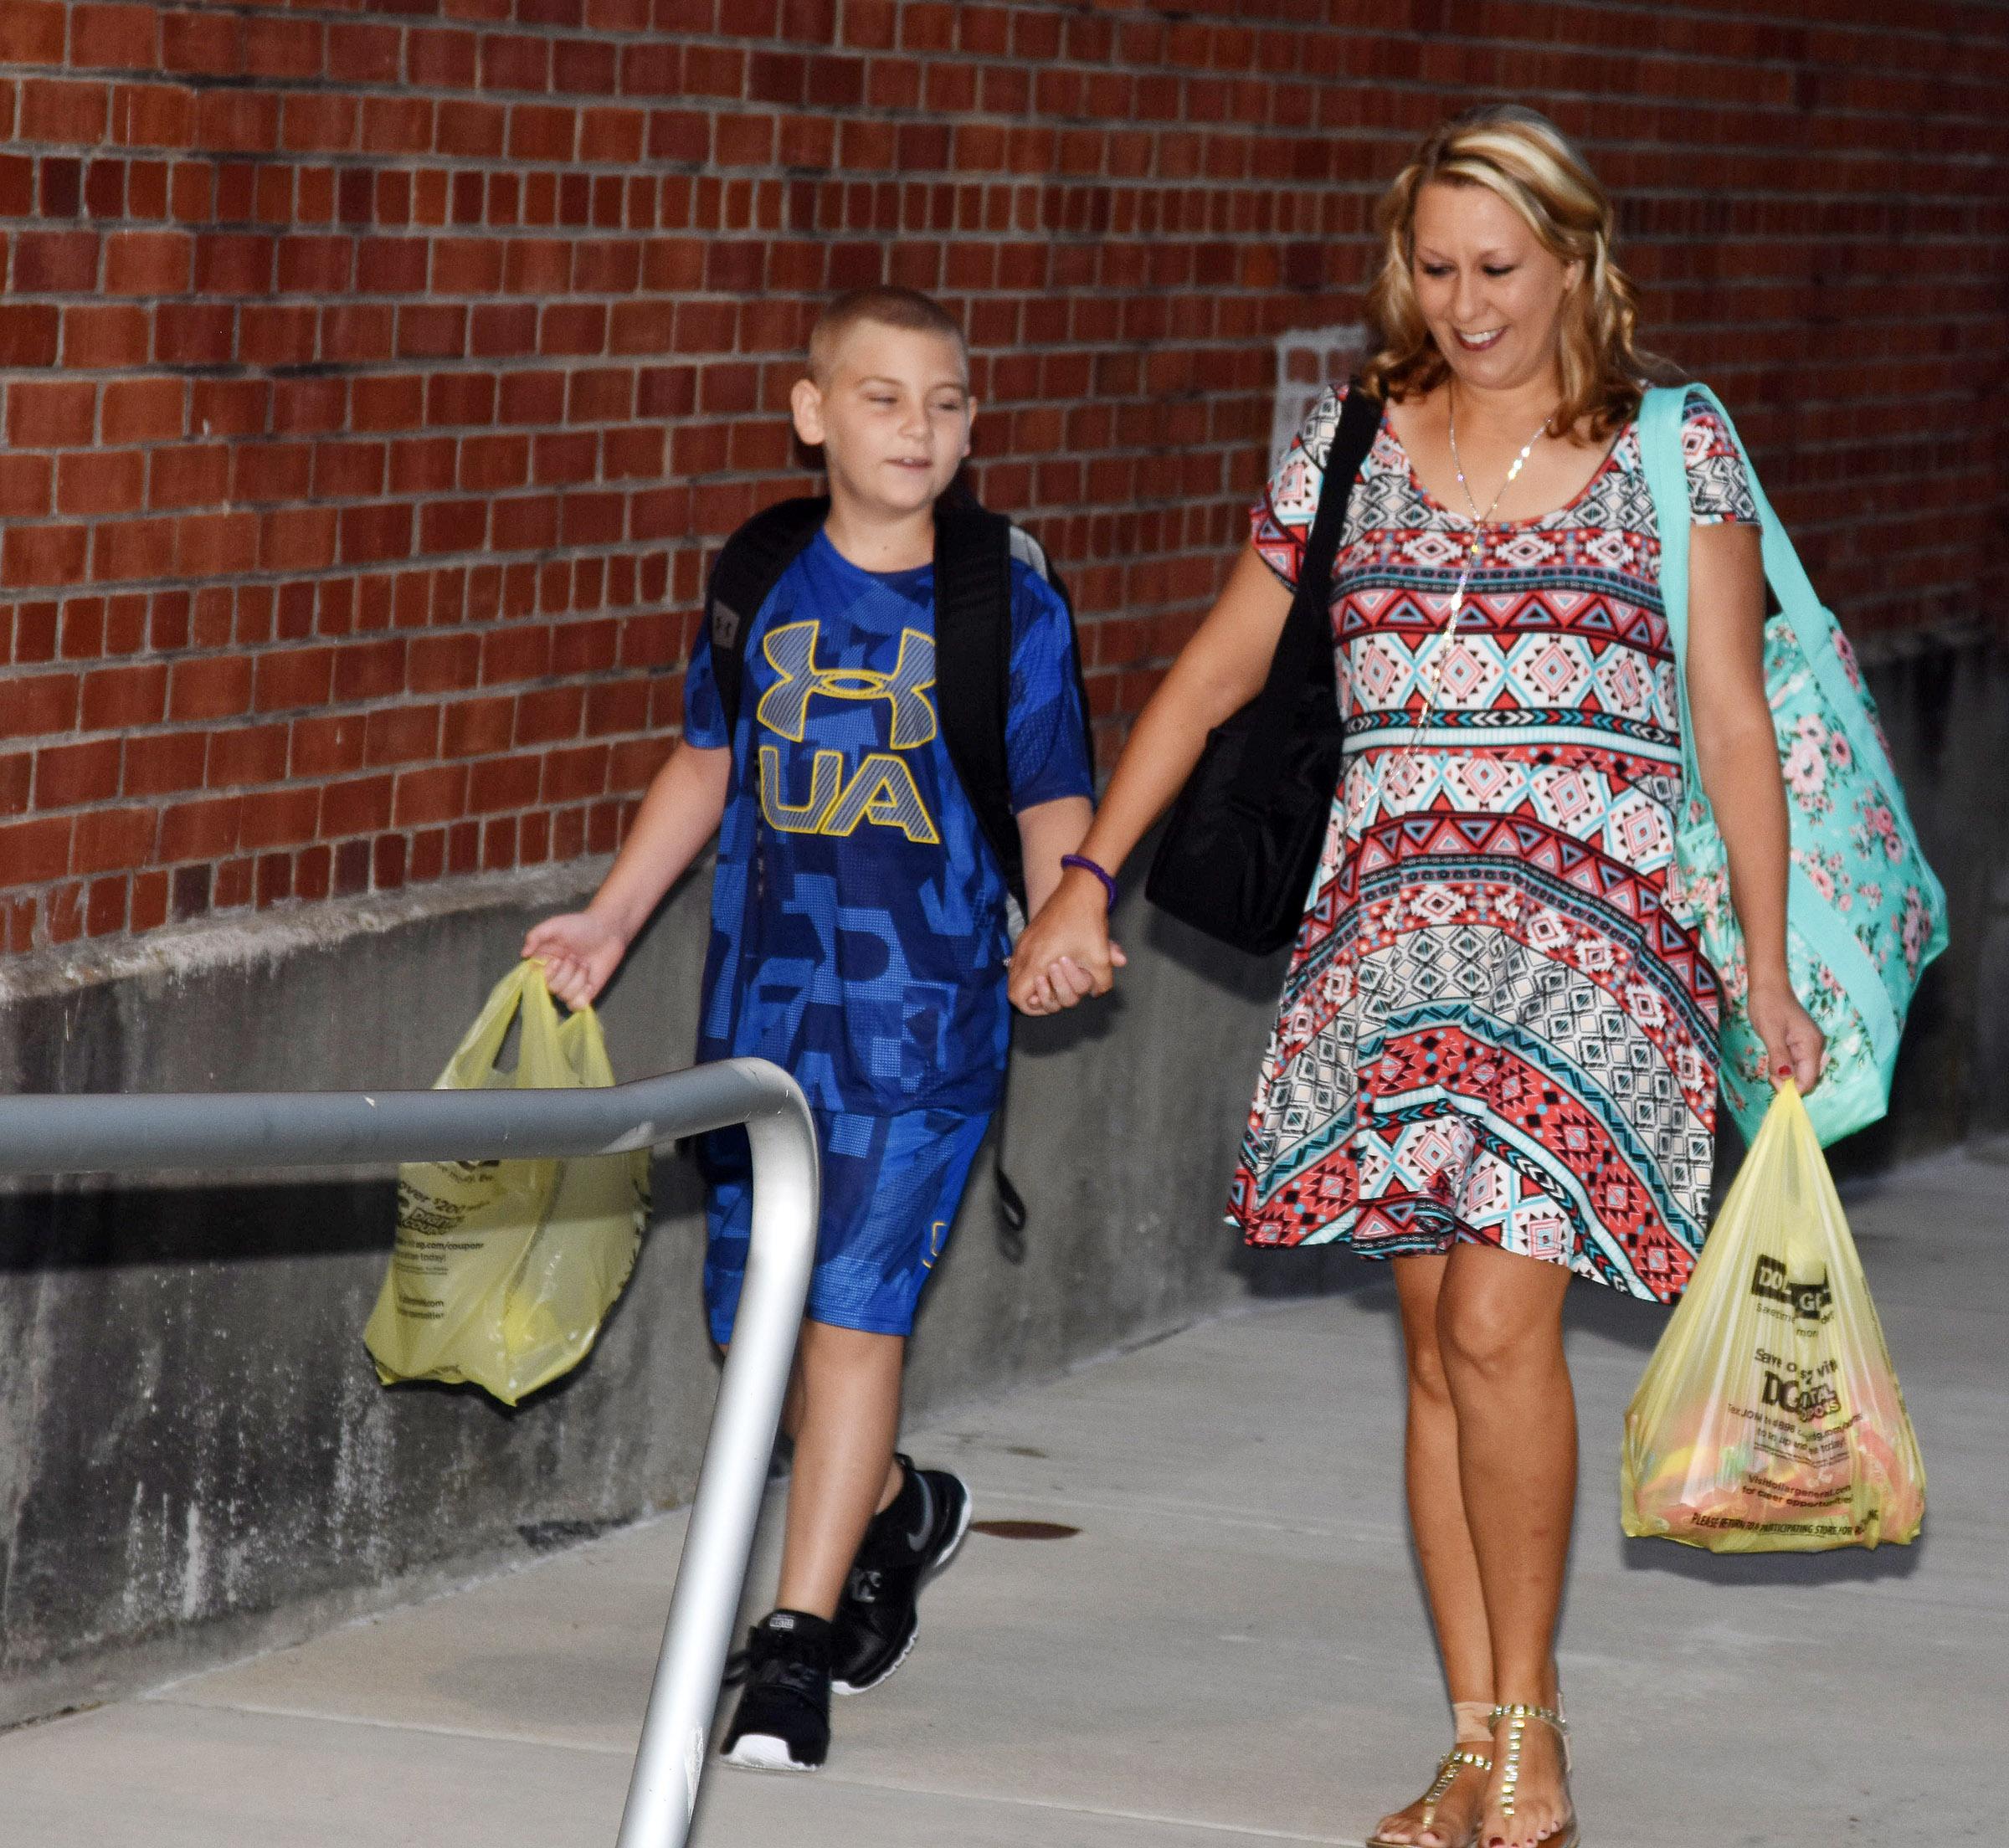 Campbellsville Elementary School teacher Amanda Greer walks in with her son Joseph, a fourth-grader.